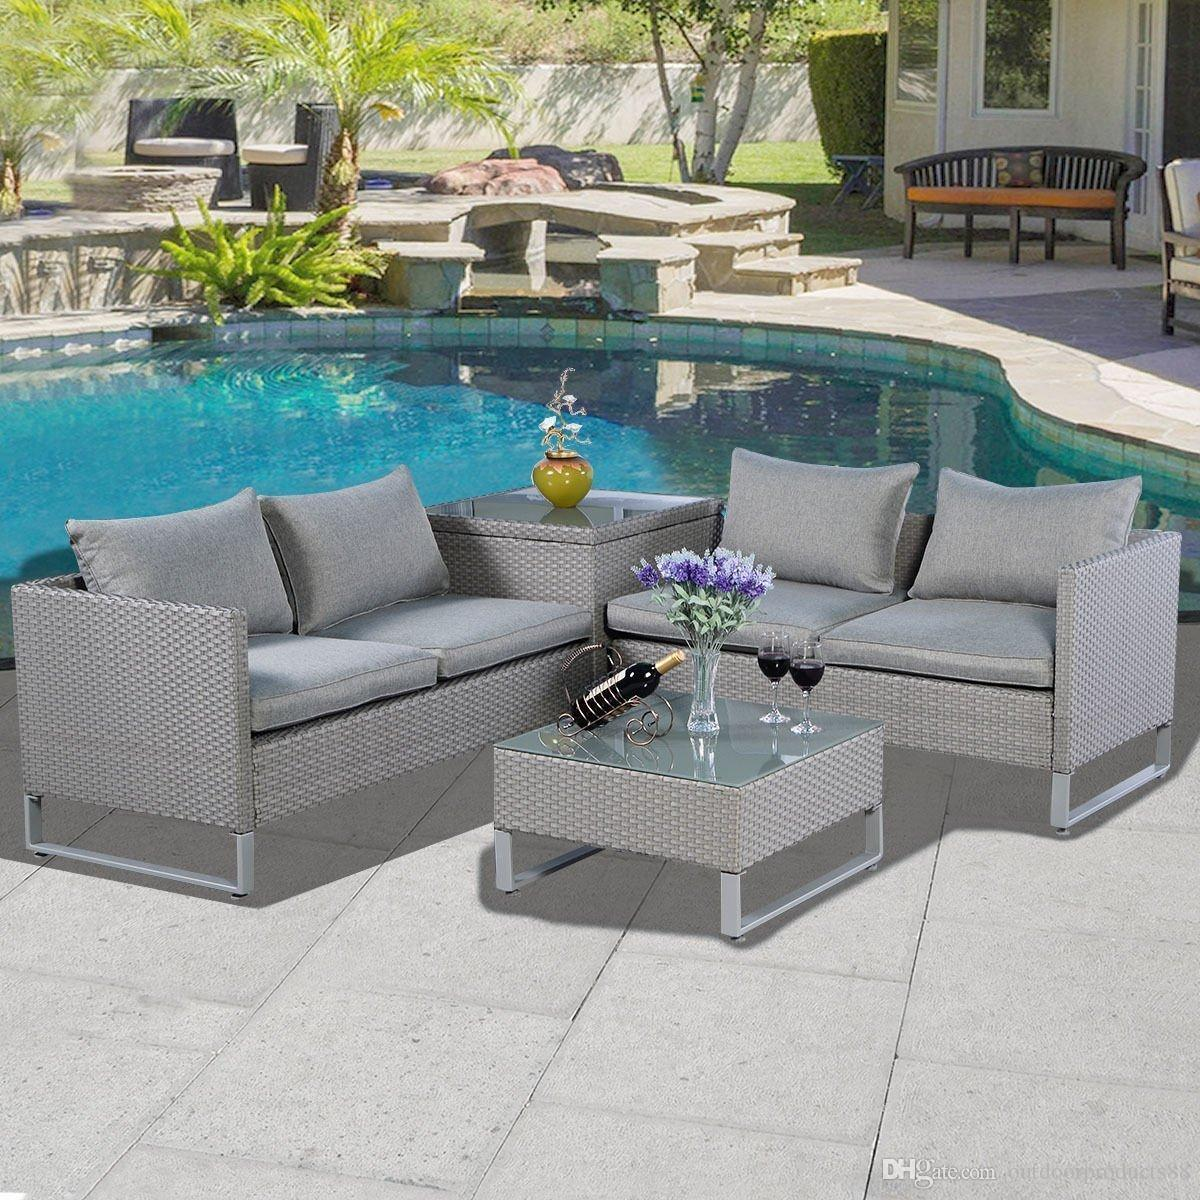 All weather outdoor furniture garden furniture sofa set new style rattan wicker sofaoutdoor rattan sofa set garden furniture sofa set